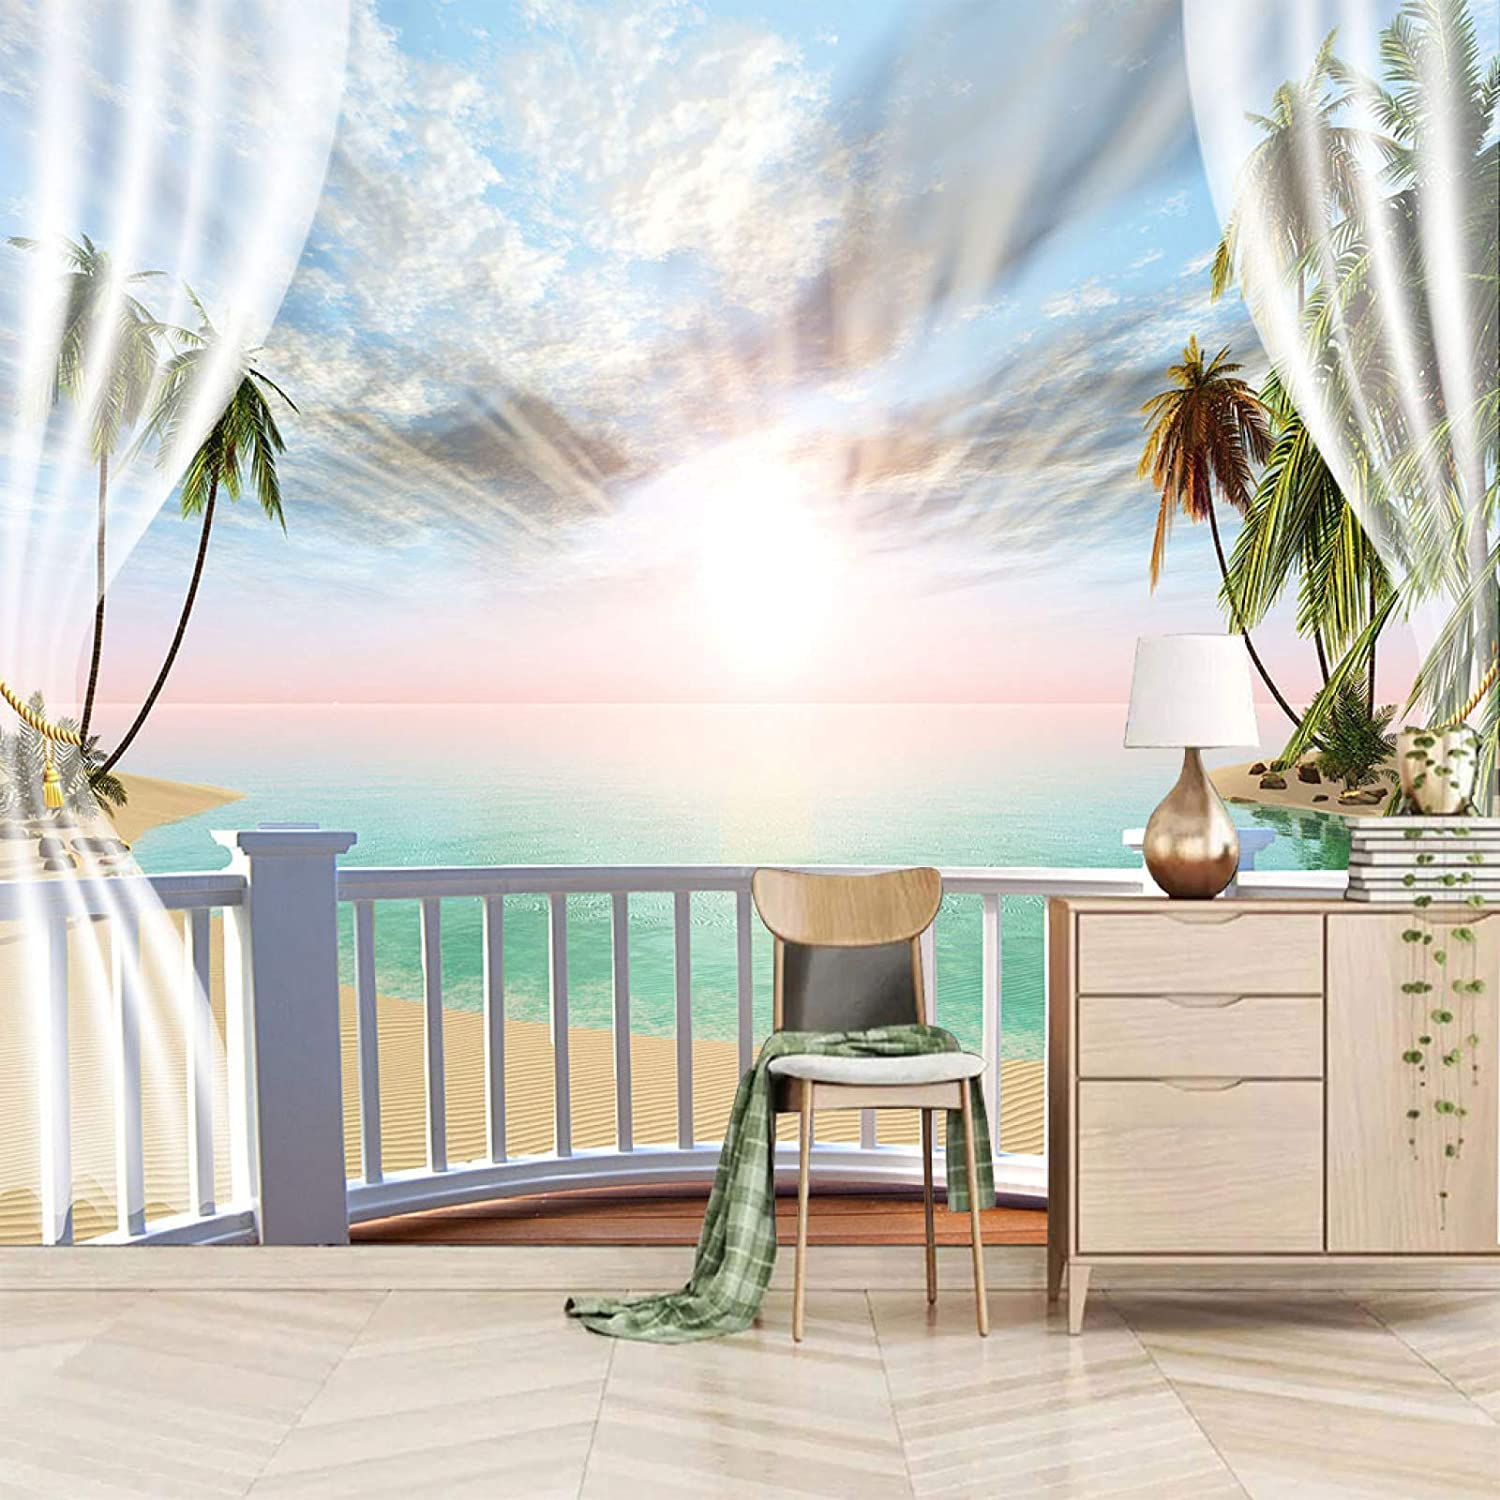 XiaoCha Sunset Sky Ocean Plants Self-Adhesive Wall Max 47% OFF 3D Gorgeous Stickers